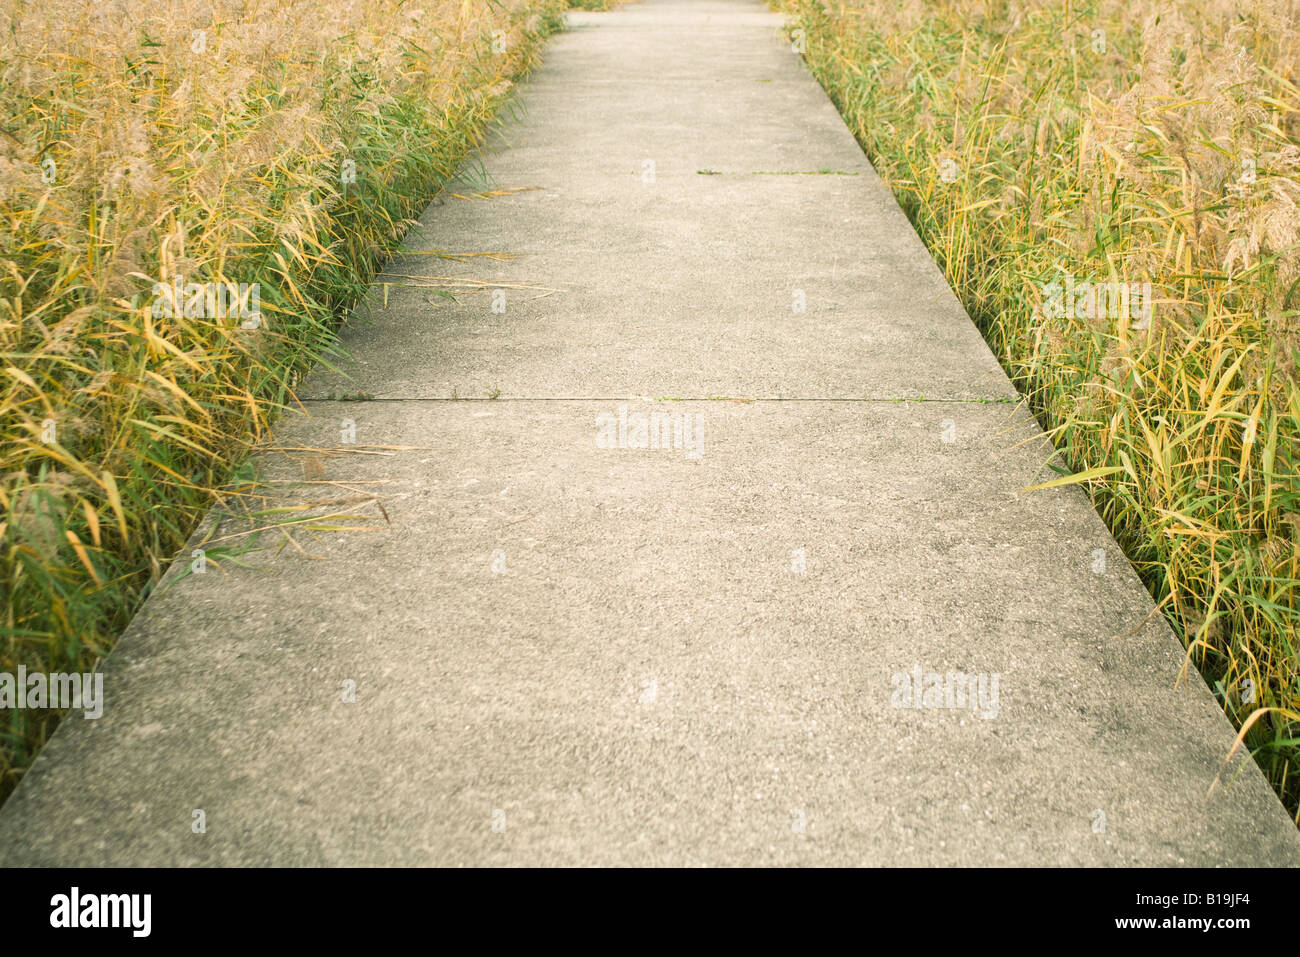 Sidewalk cutting through field - Stock Image